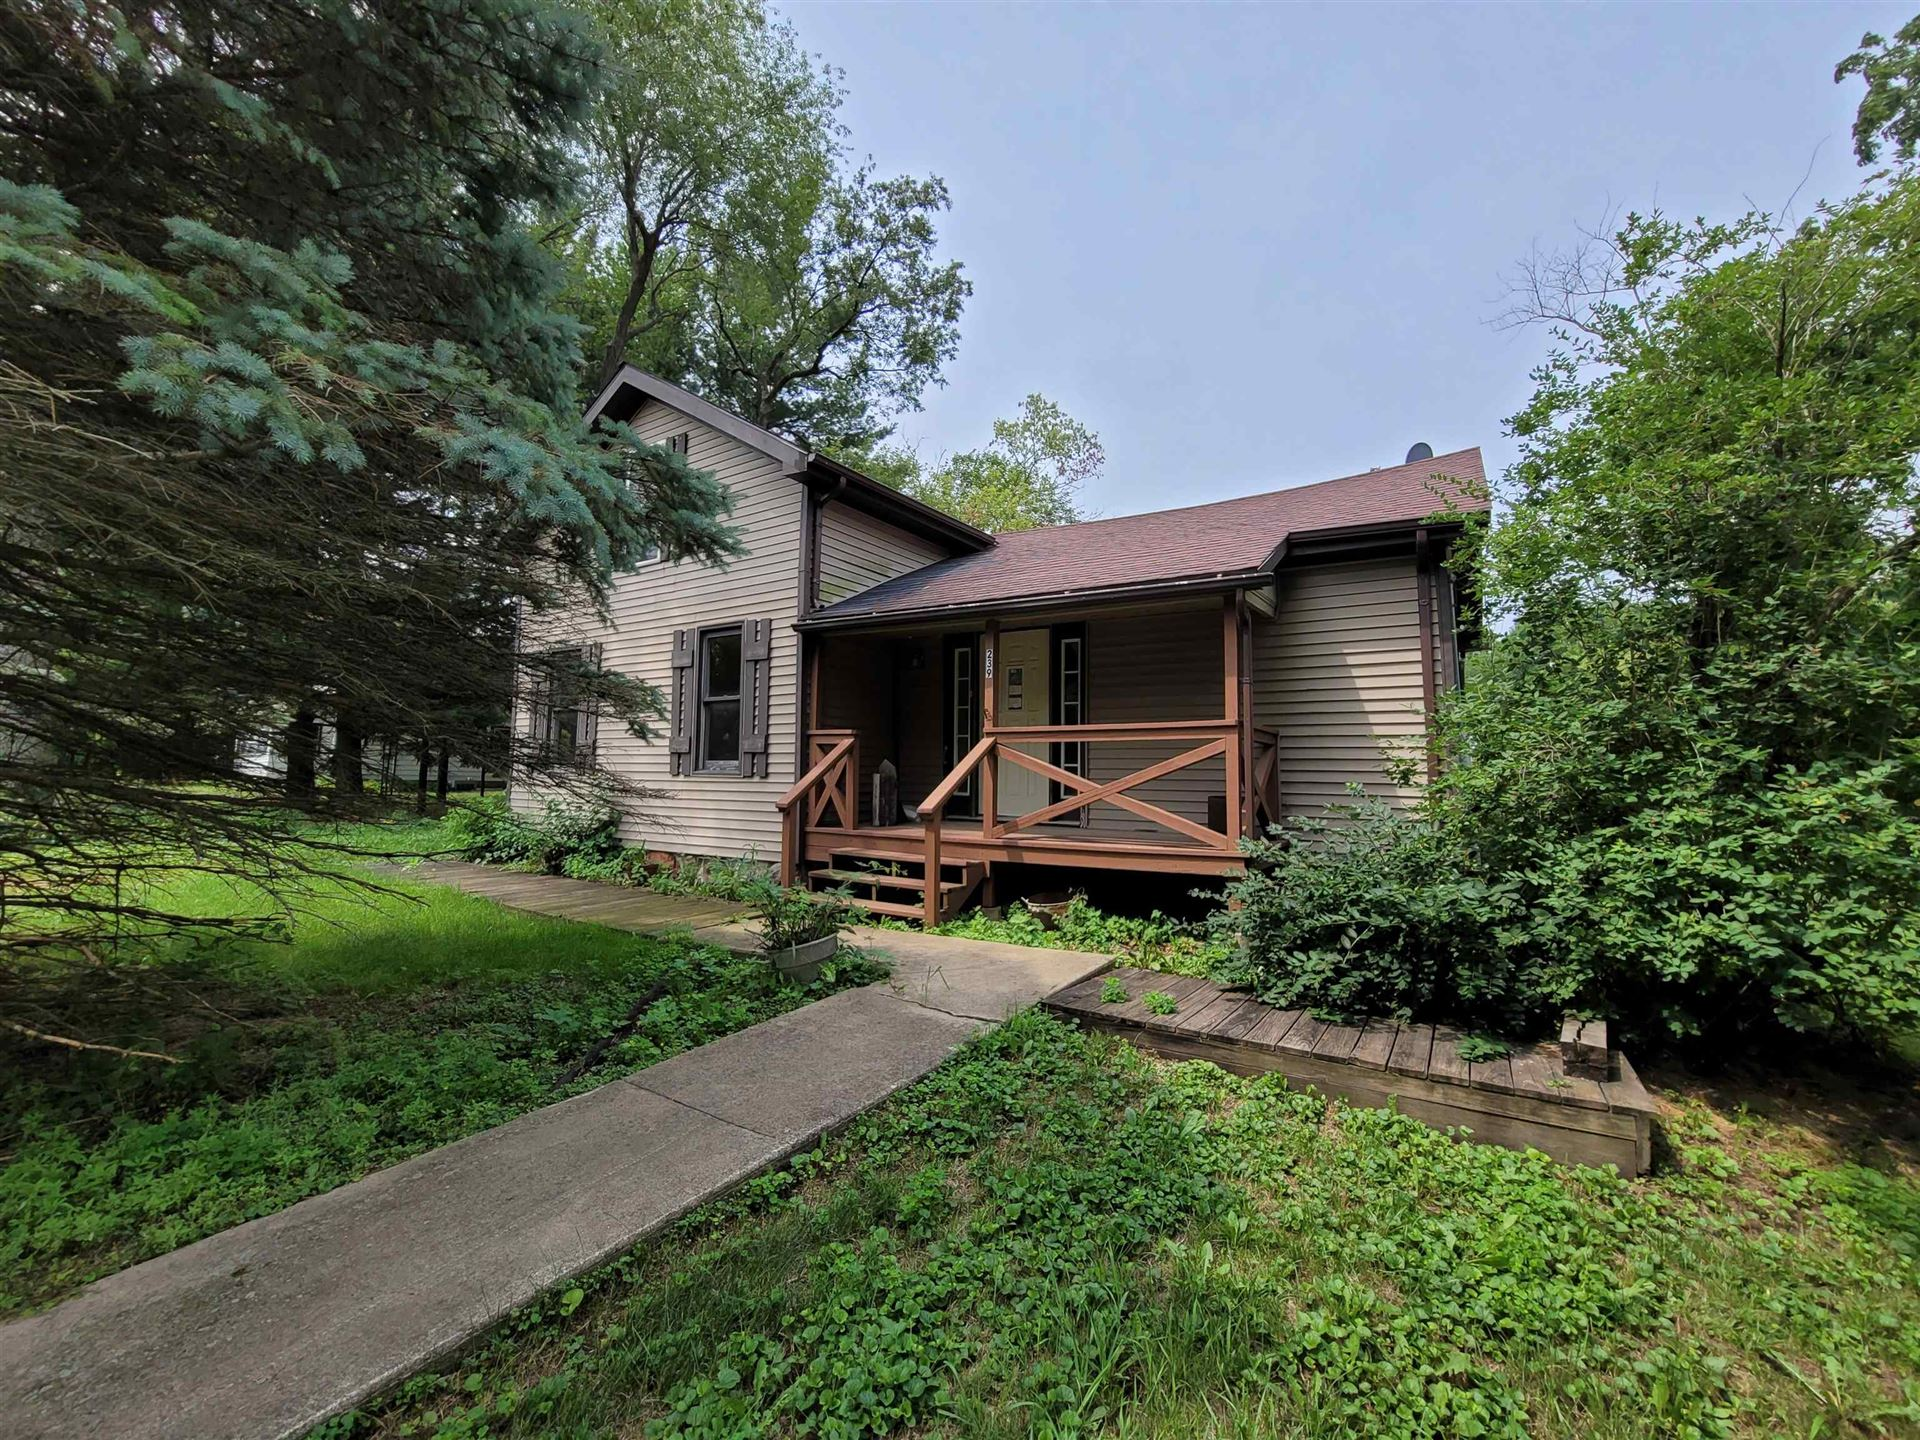 239 Nelson St, Sharon, WI 53585-9618 - #: 1917650